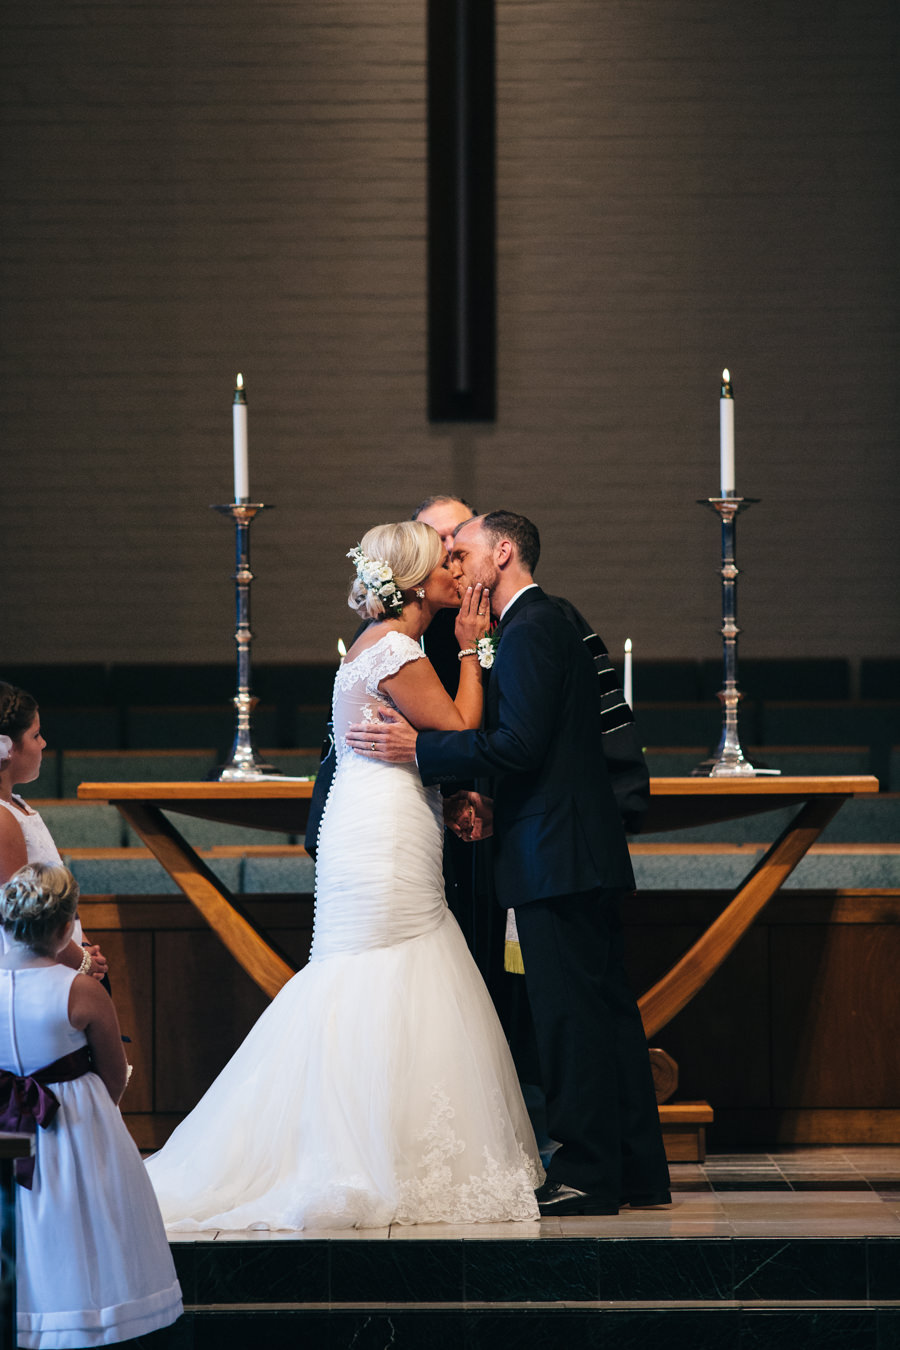 Bride and groom's first kiss at wedding ceremony.